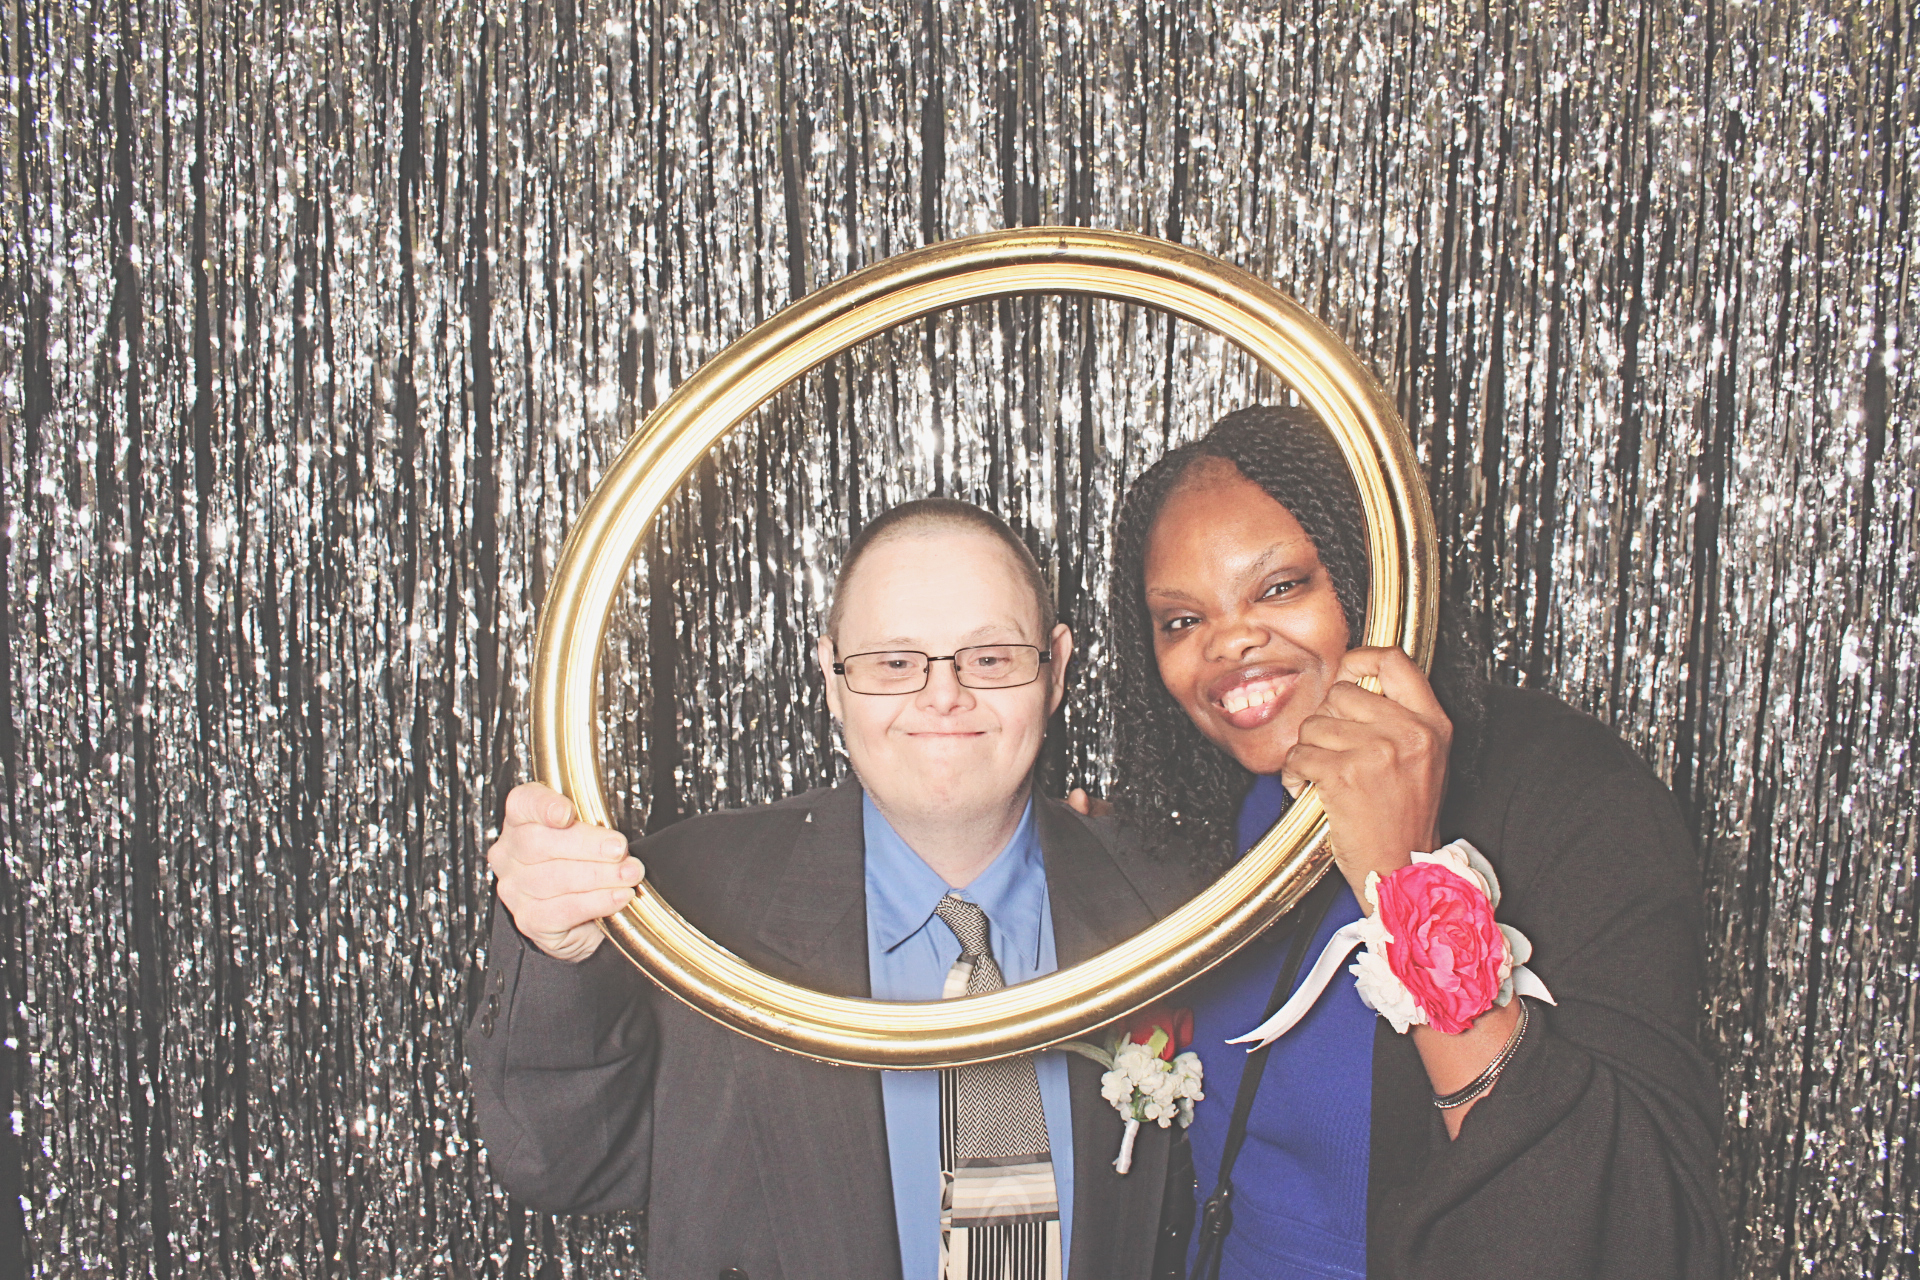 2-8-19 Atlanta Southcrest Church Photo Booth - Night to Shine Coweta 2019 - Robot Booth088.jpg